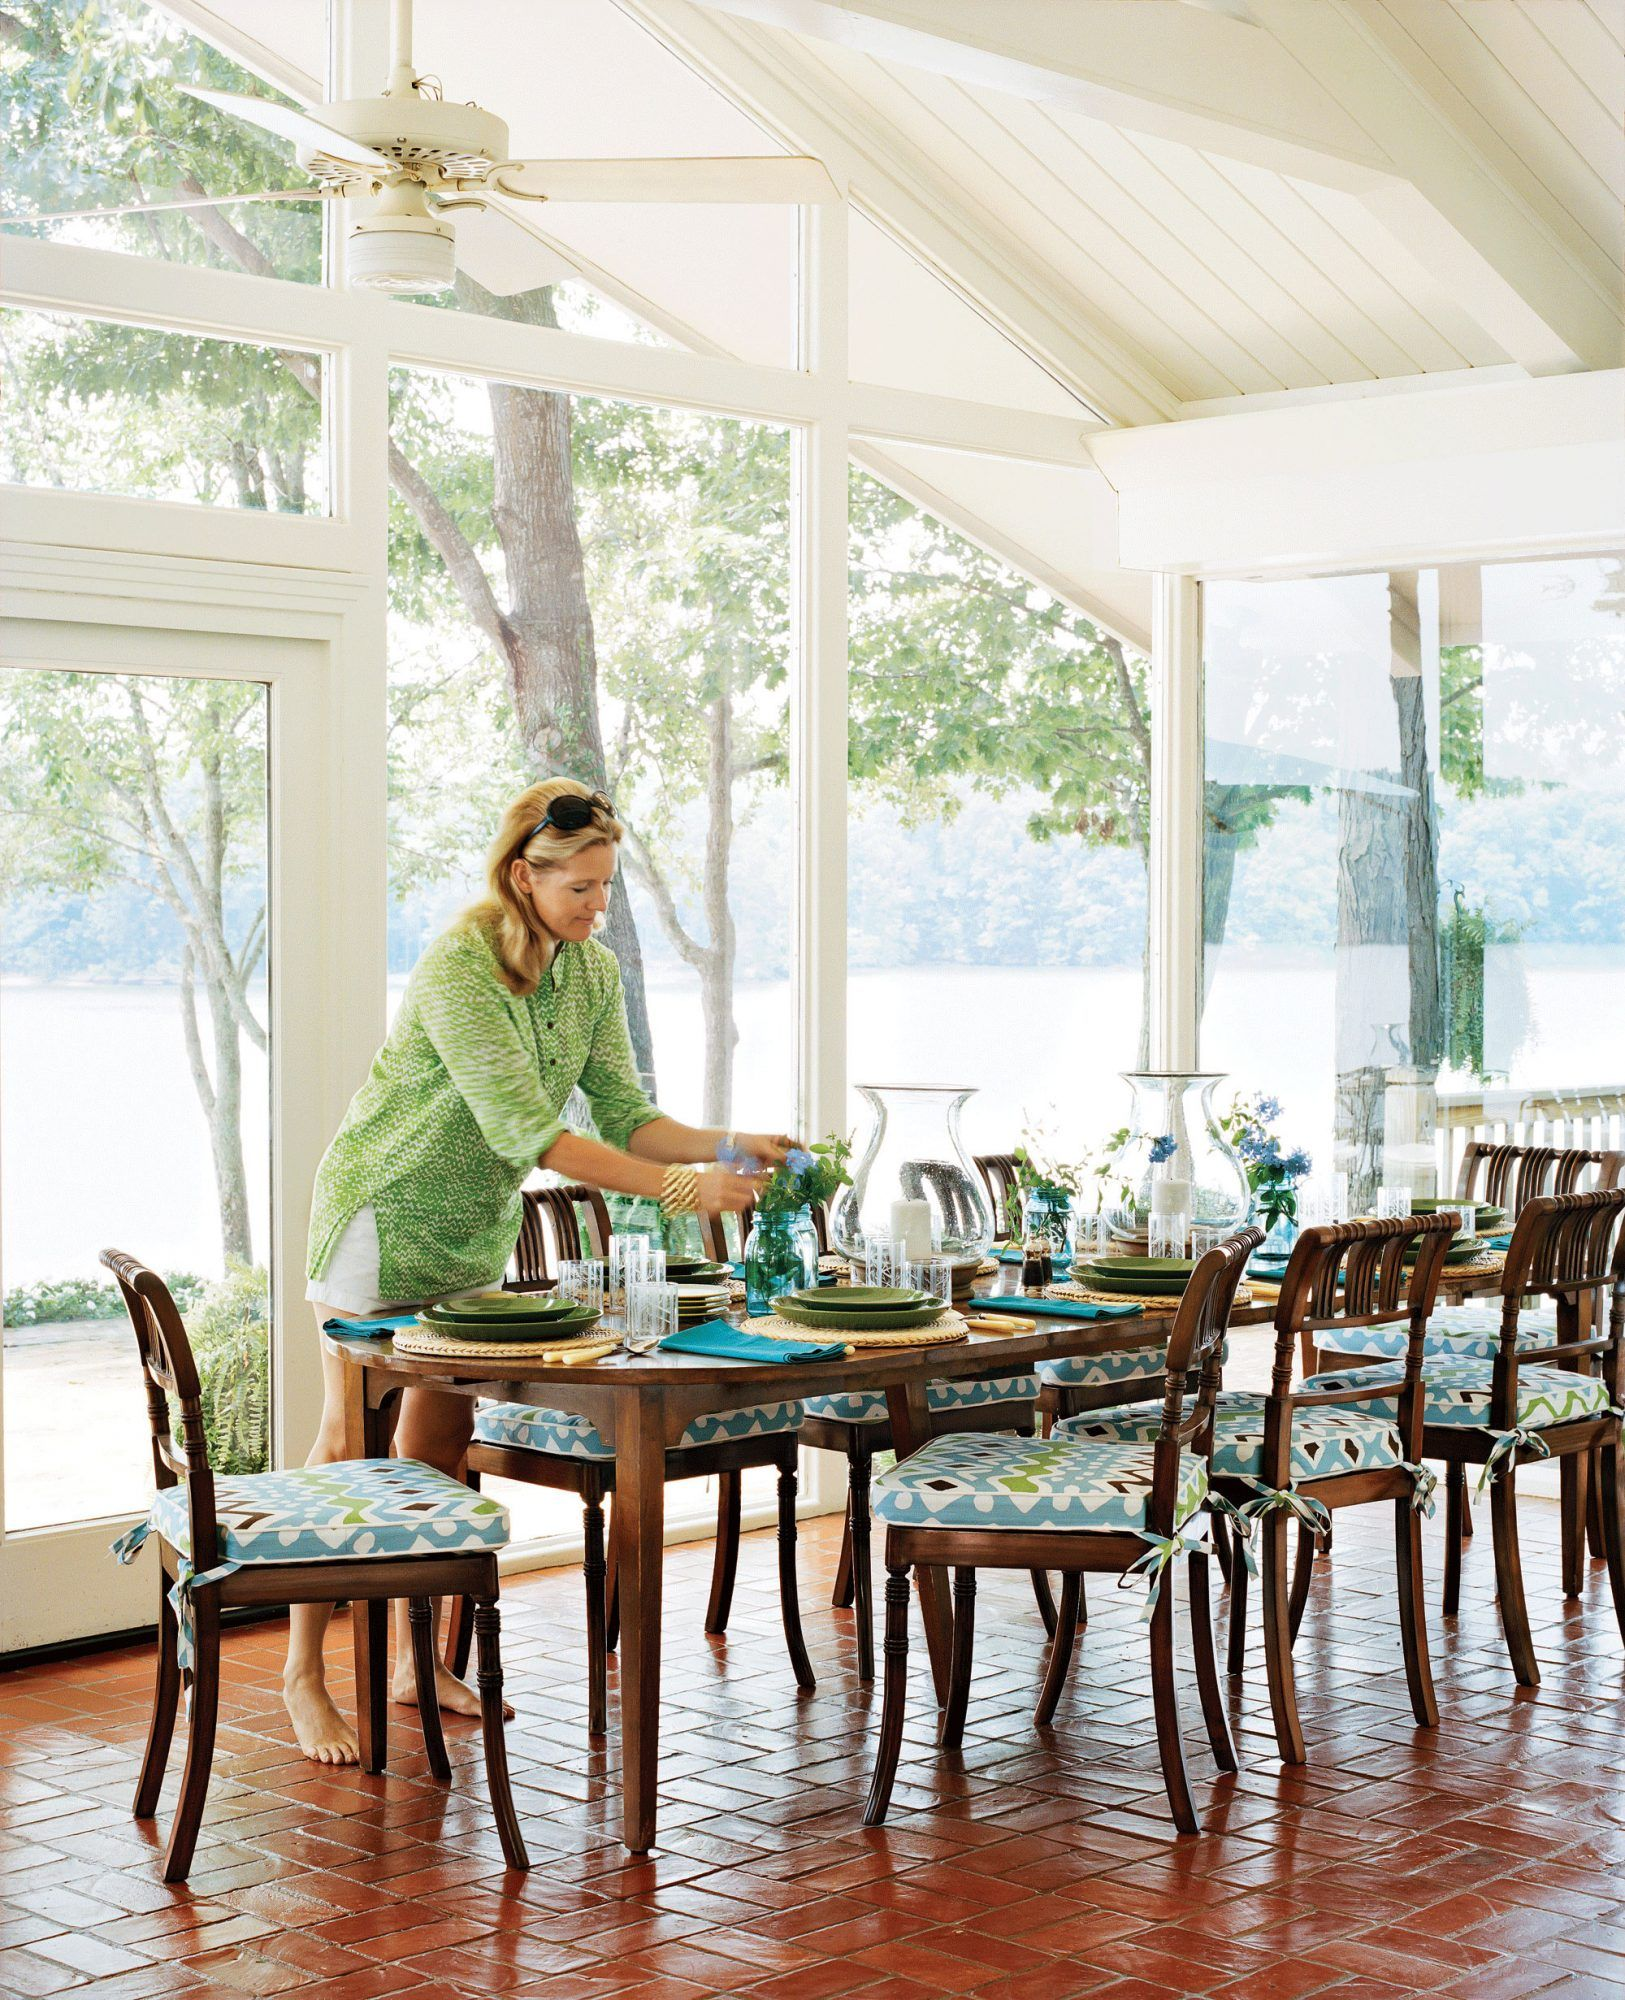 Great Home Design Ideas: 24 Lake House Decorating Ideas